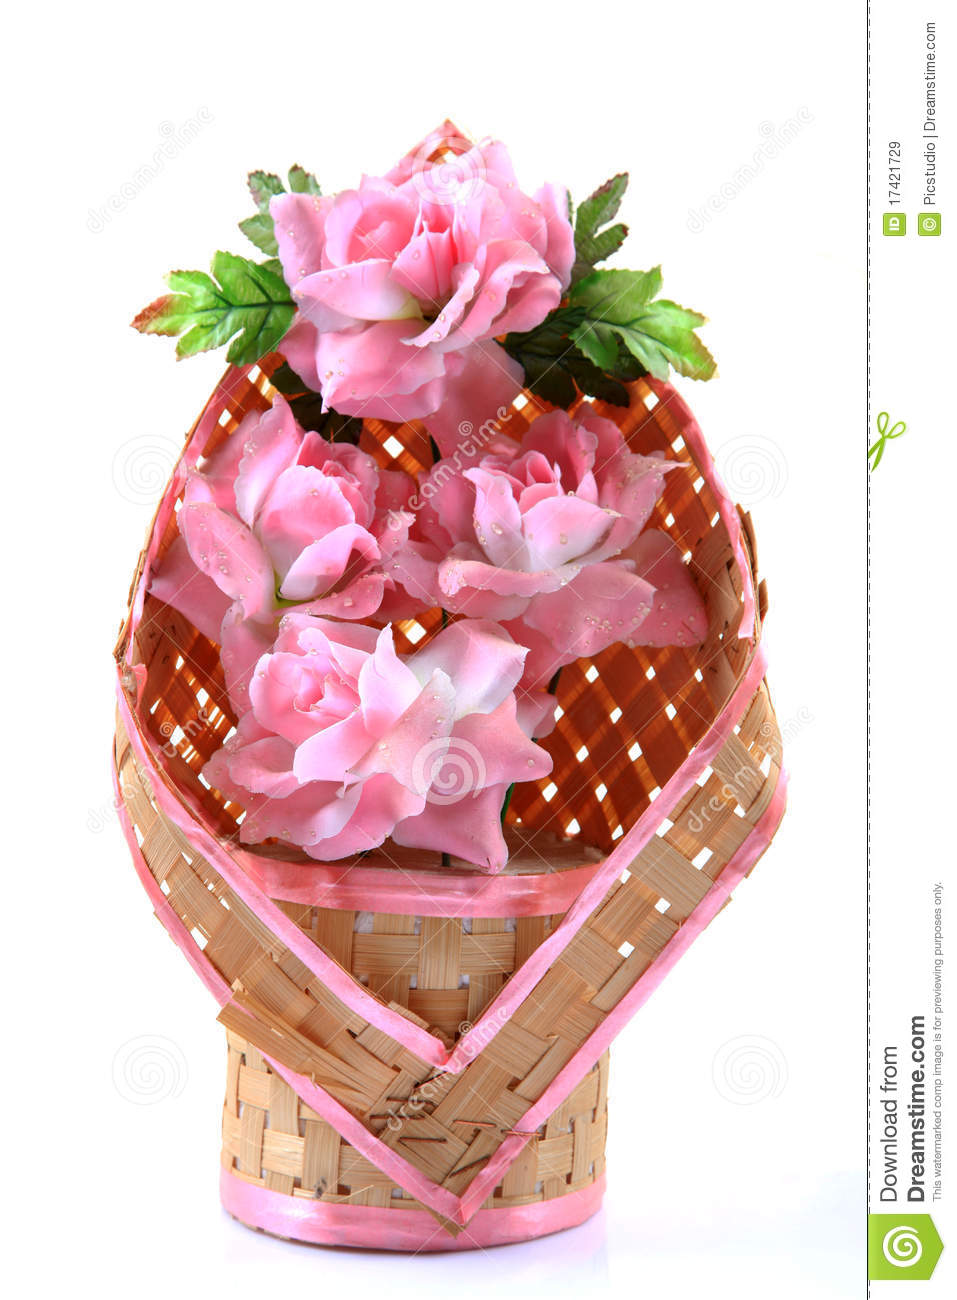 rose flower bouquet stock image. image of plant, bamboo - 17421729